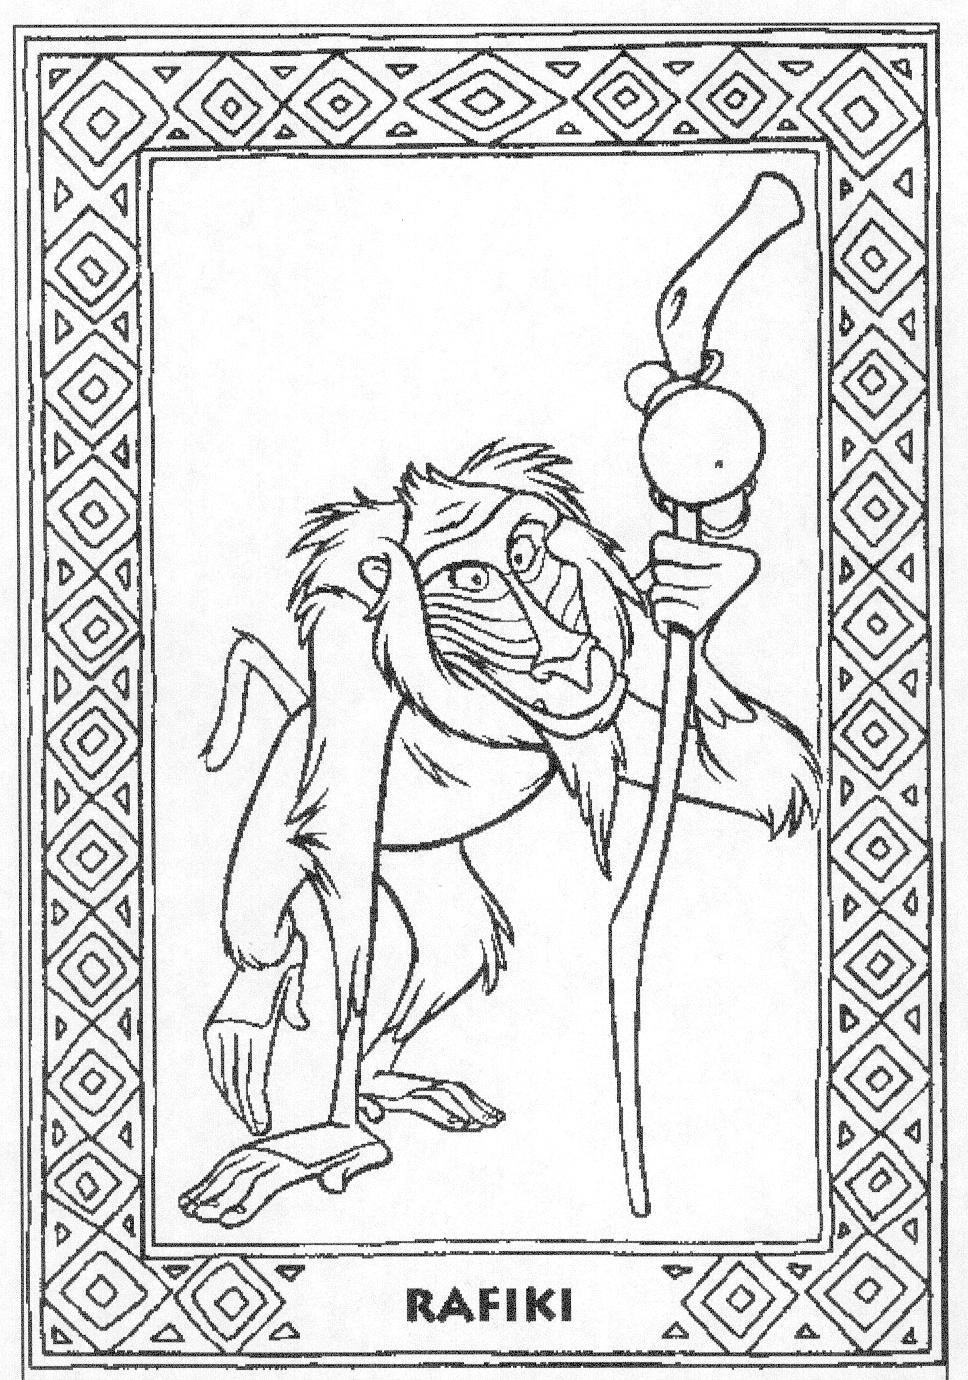 lion king coloring pages printable - coloring page the lion king coloring pages 10